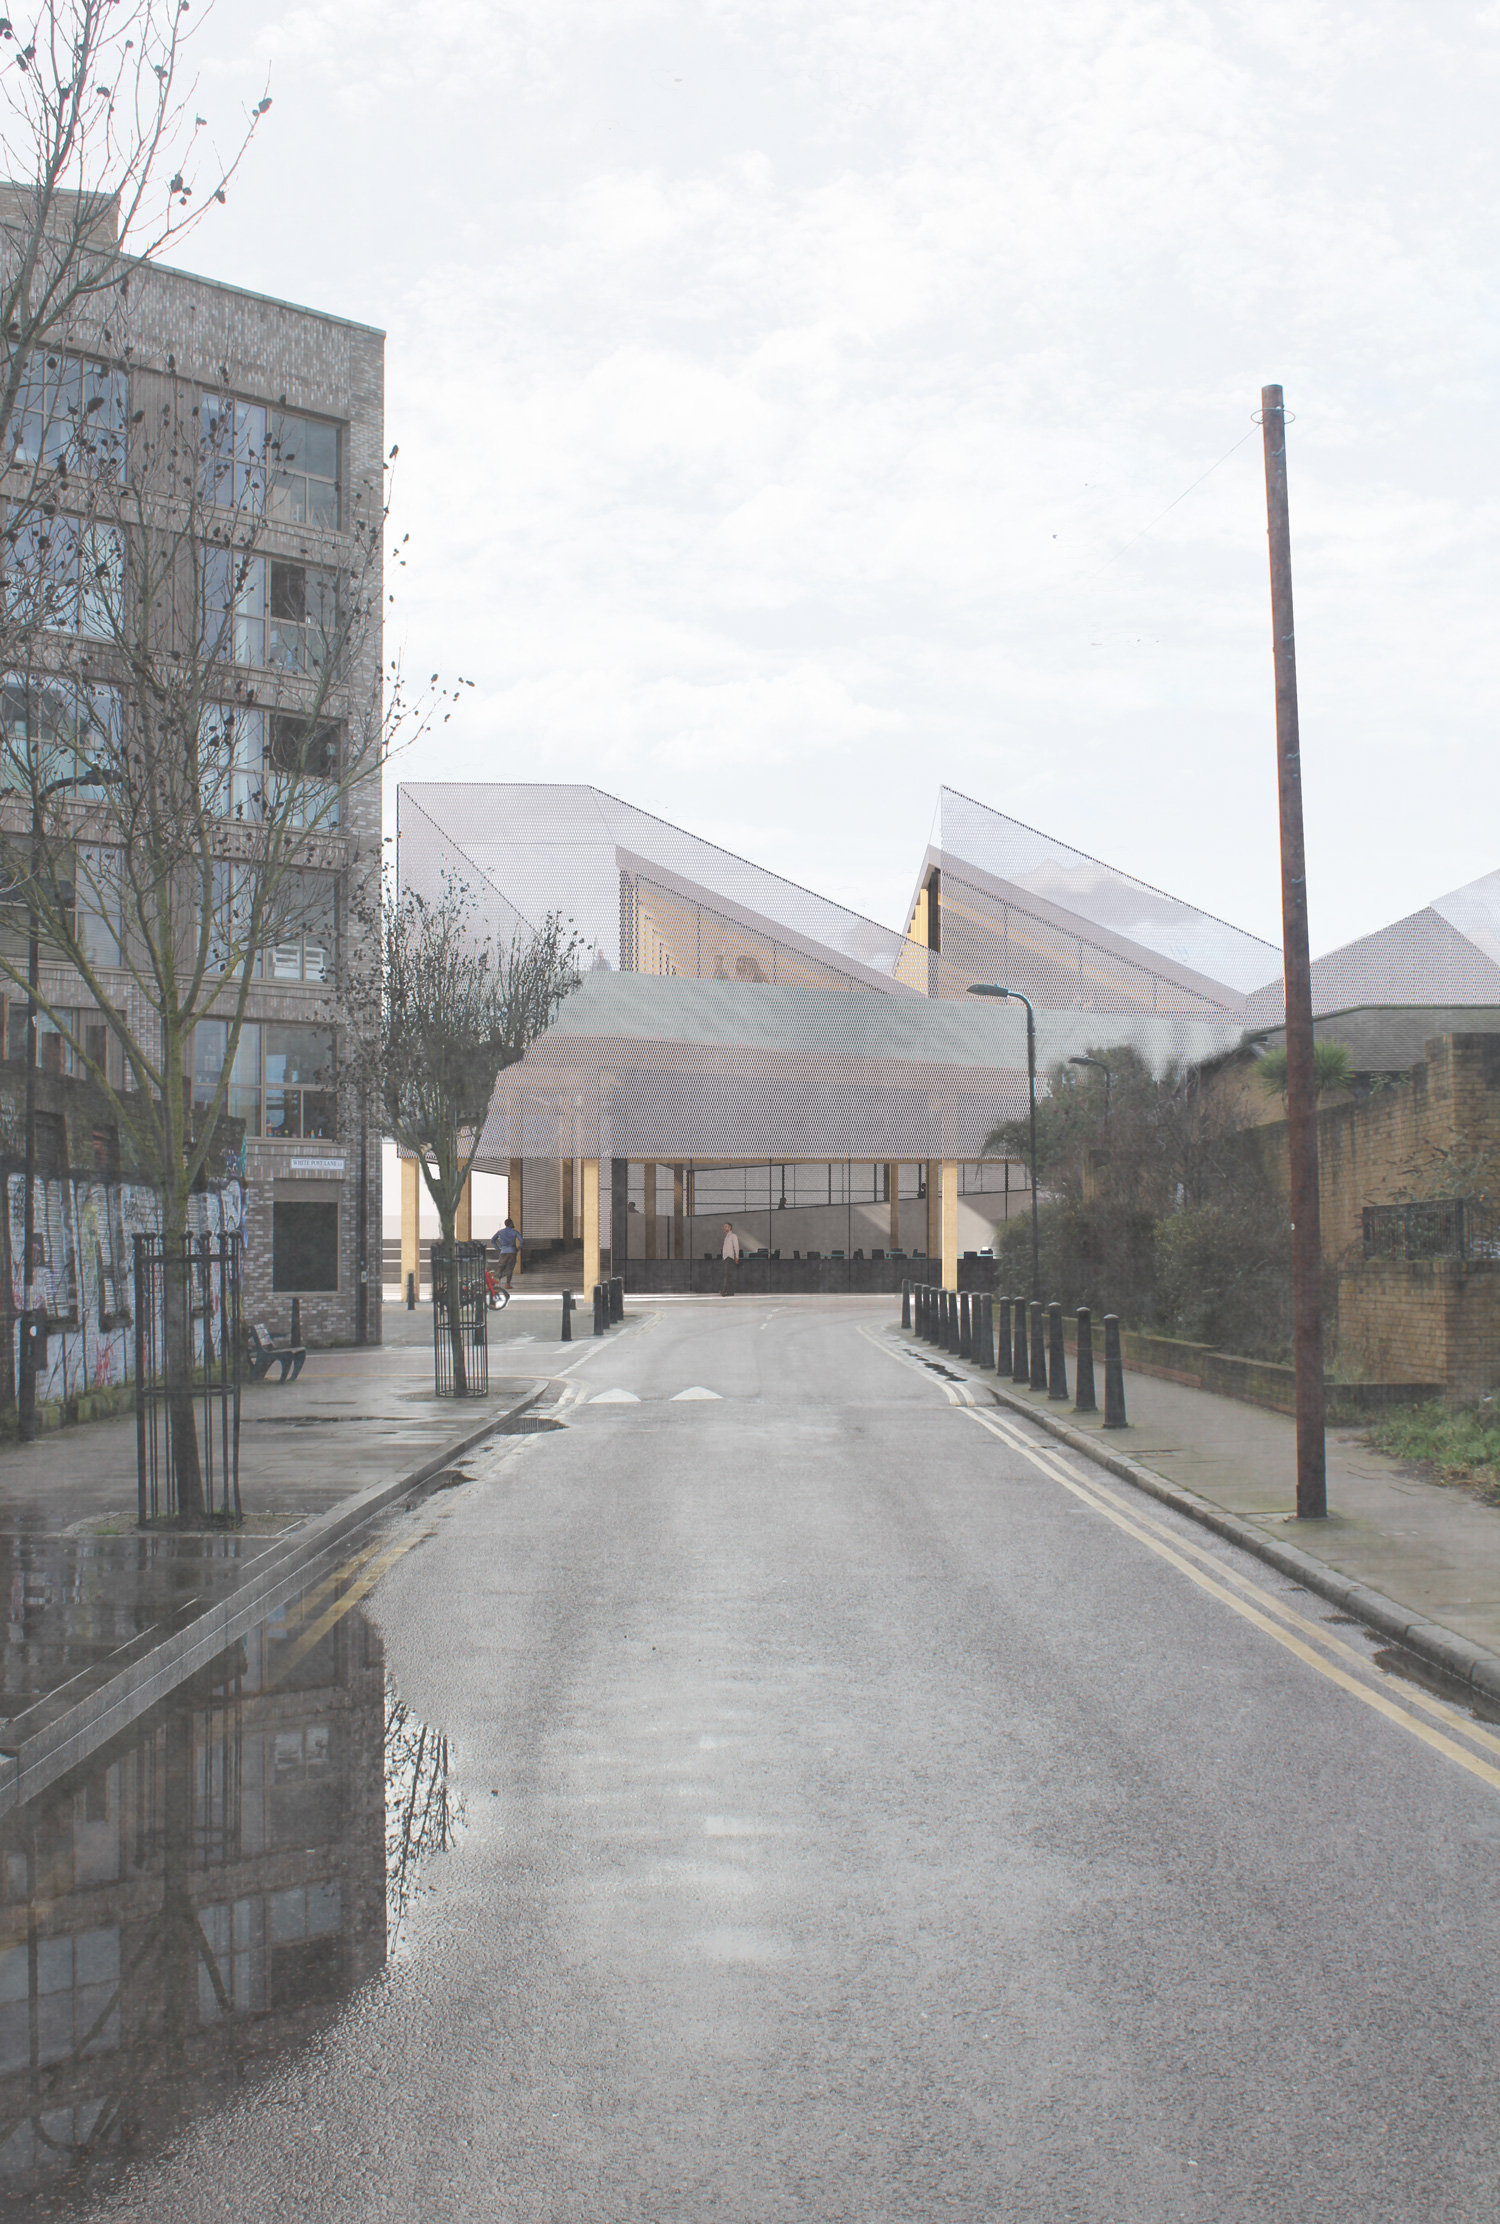 Approach from Hackney Wick town centre